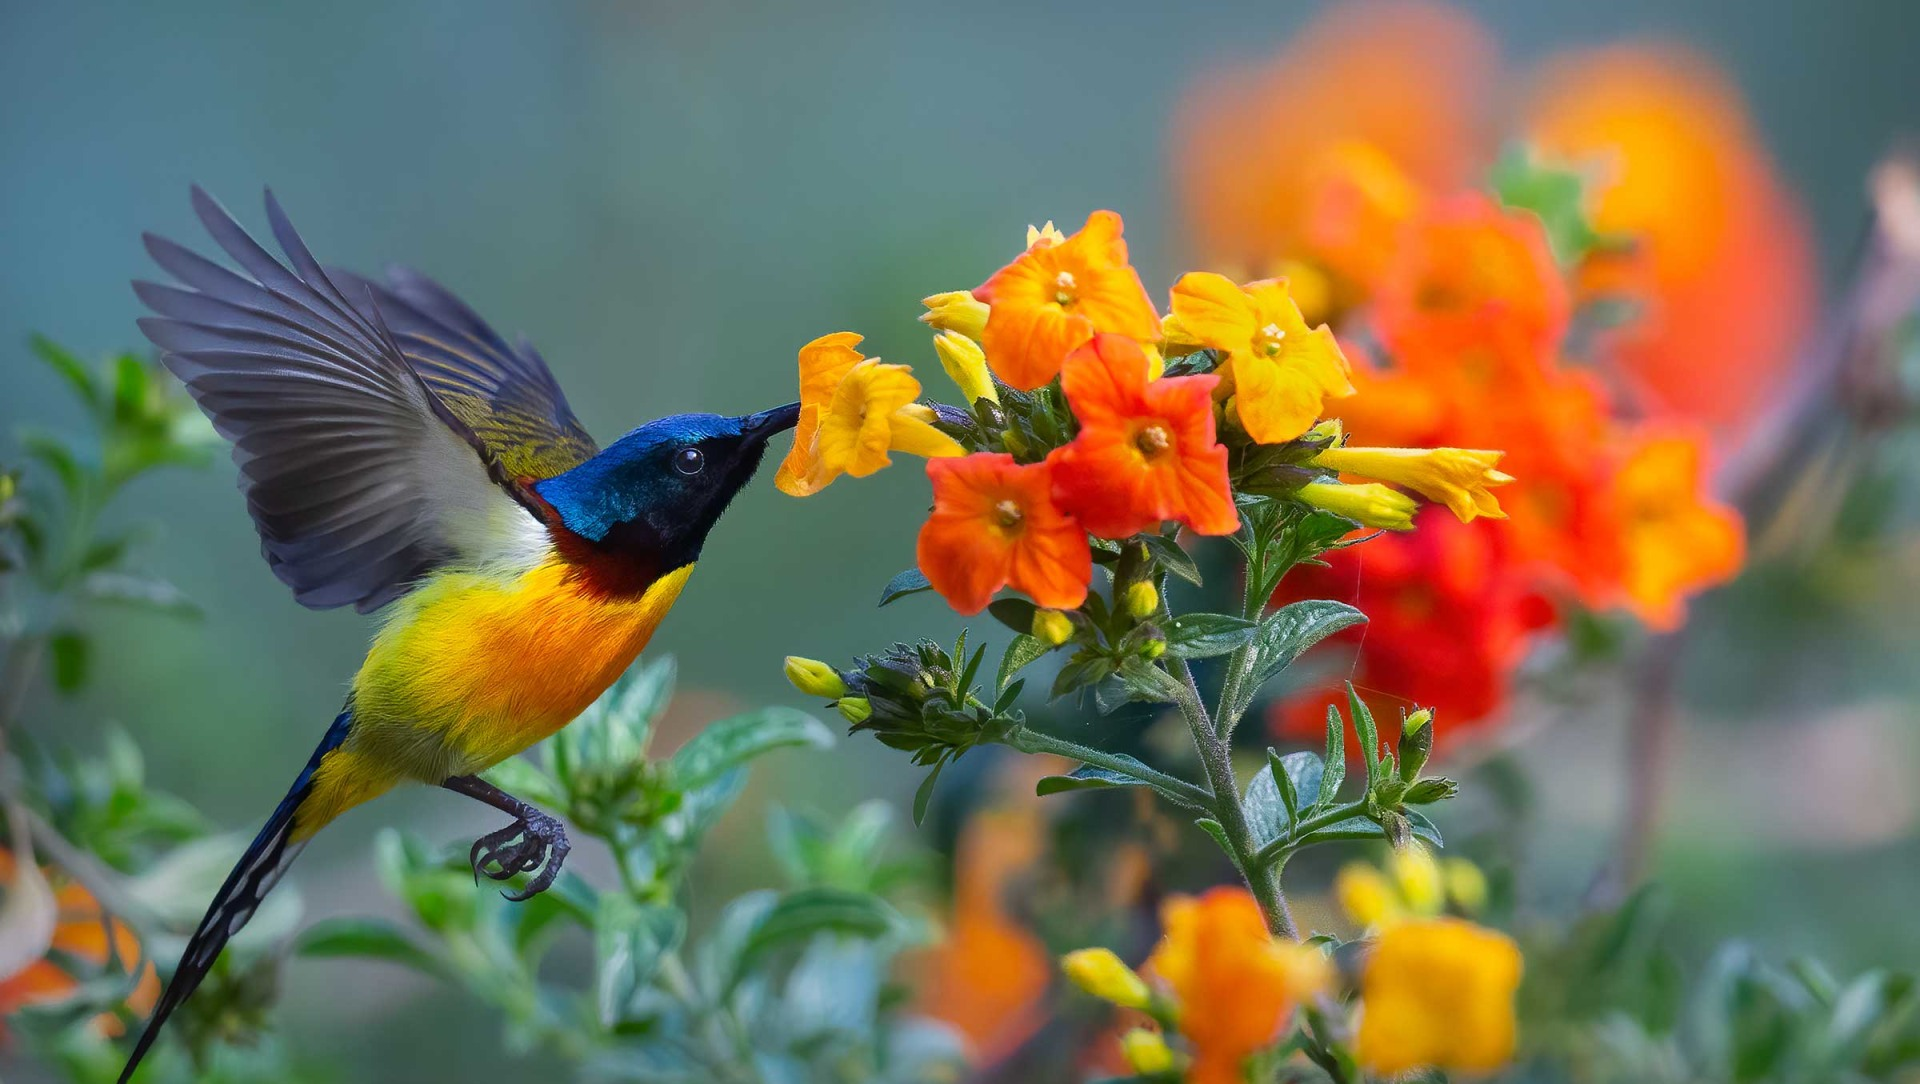 For Love of Nectar: The Dazzling Sunbirds of India